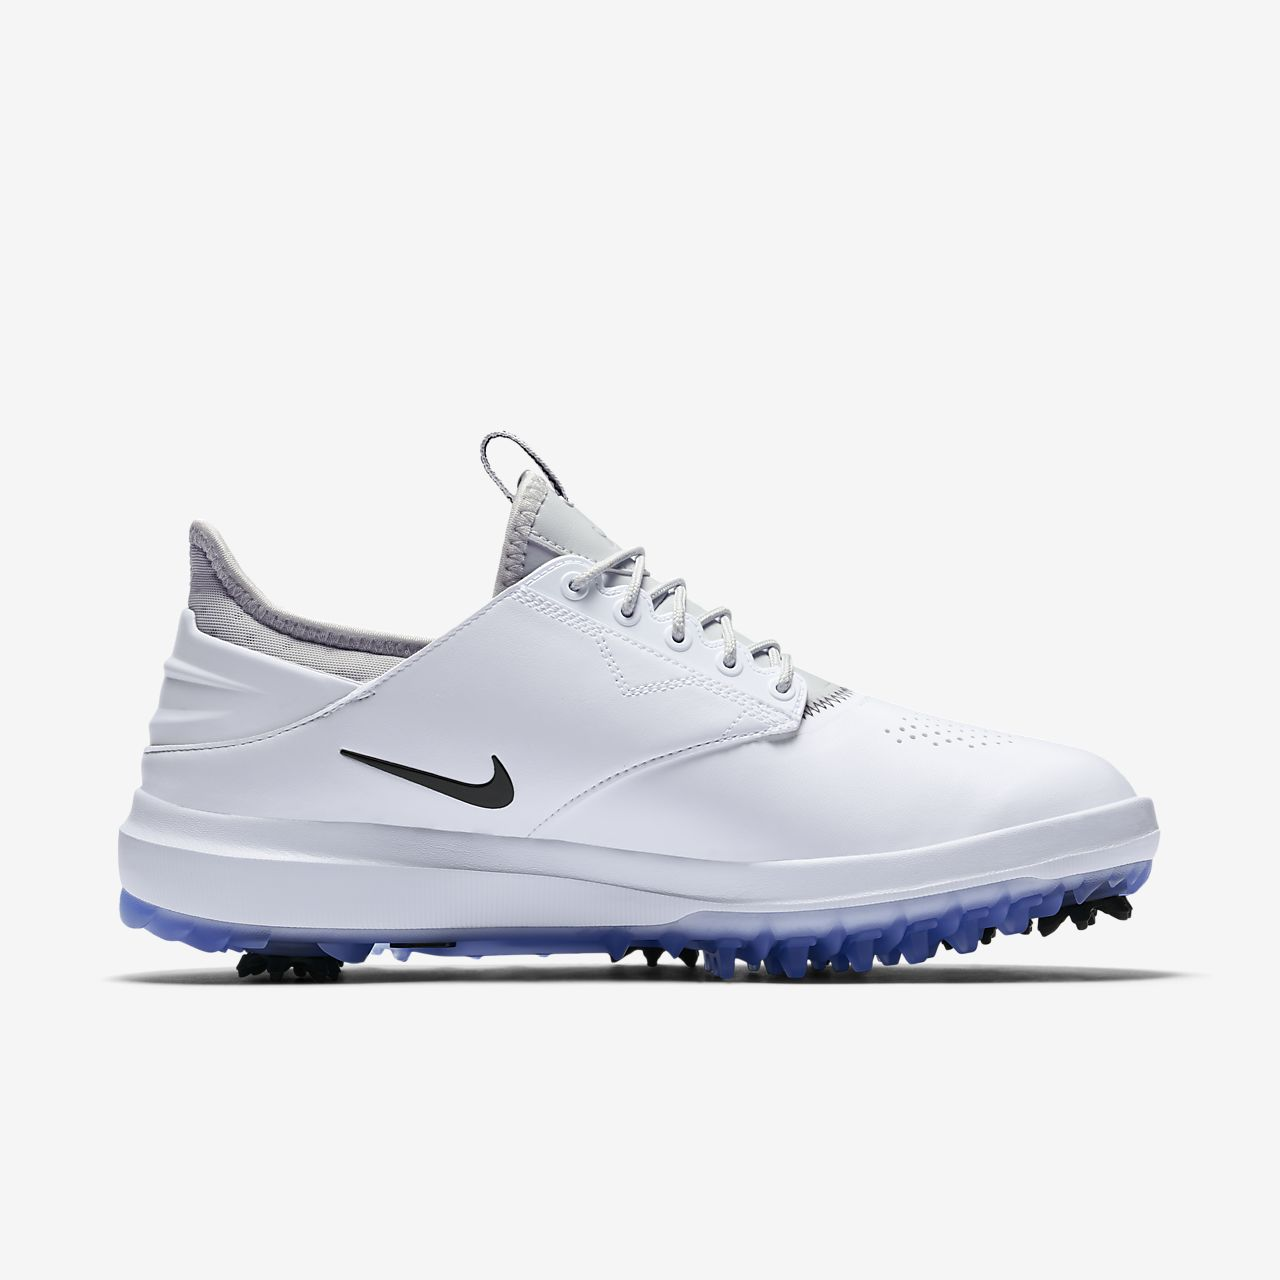 sneakers for cheap a48a7 5dfc5 ... Męskie buty do golfa Nike Air Zoom Direct